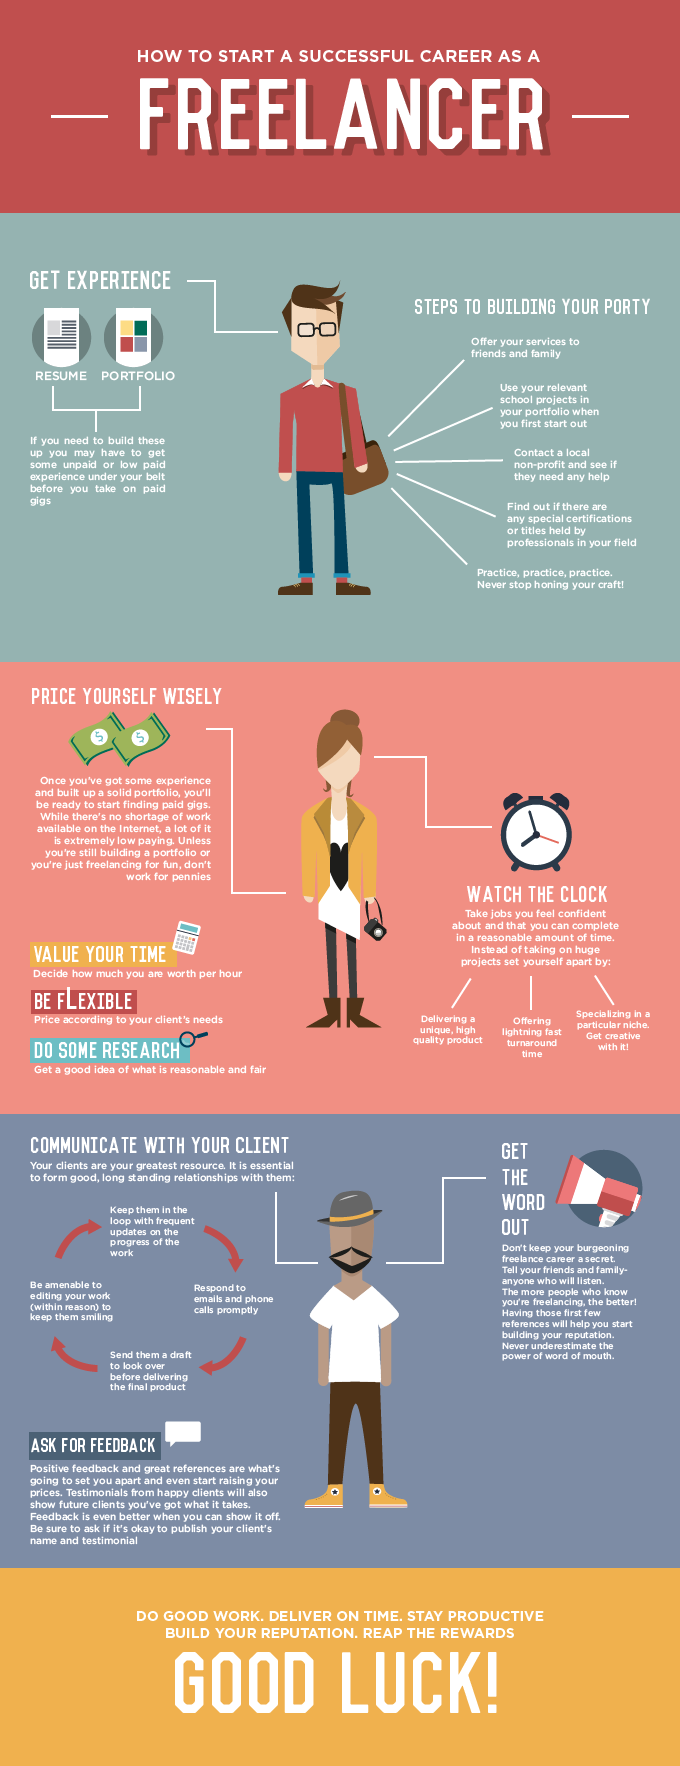 How To Start A Successful Career As A Freelancer Infographic Infographic Graphic Design Tips Web Design